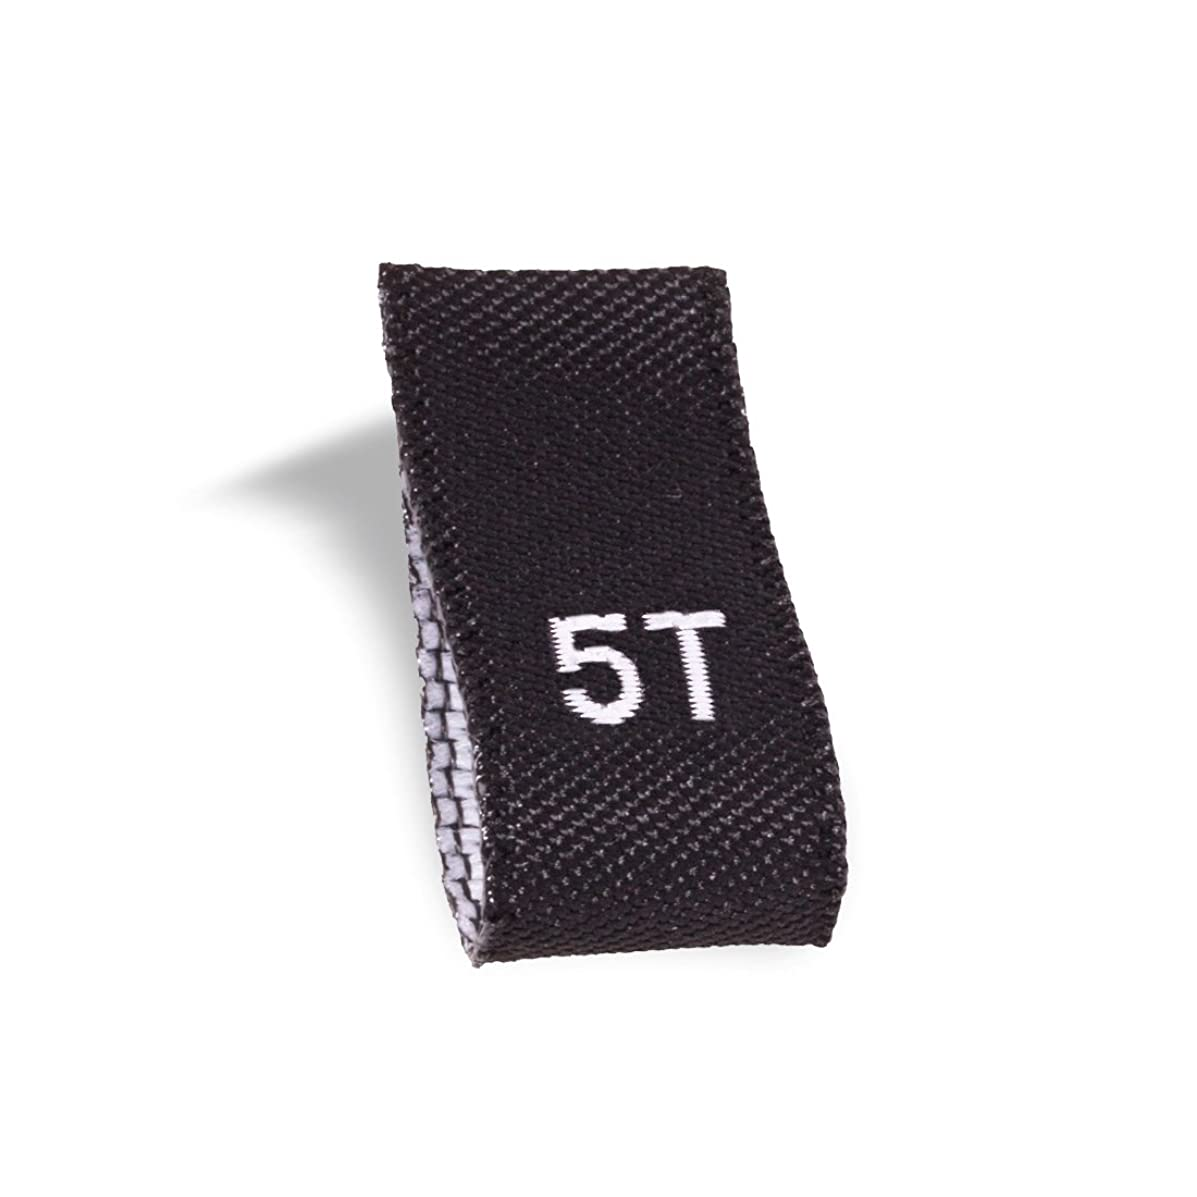 Wunderlabel Kid Size Label Woven Crafting Craft Art Fashion Ribbon Ribbons Tag for Clothing Sewing Sew on Clothes Garment Fabric Material Embroidered Labels Tags, White on Black, 5T, 25 Labels